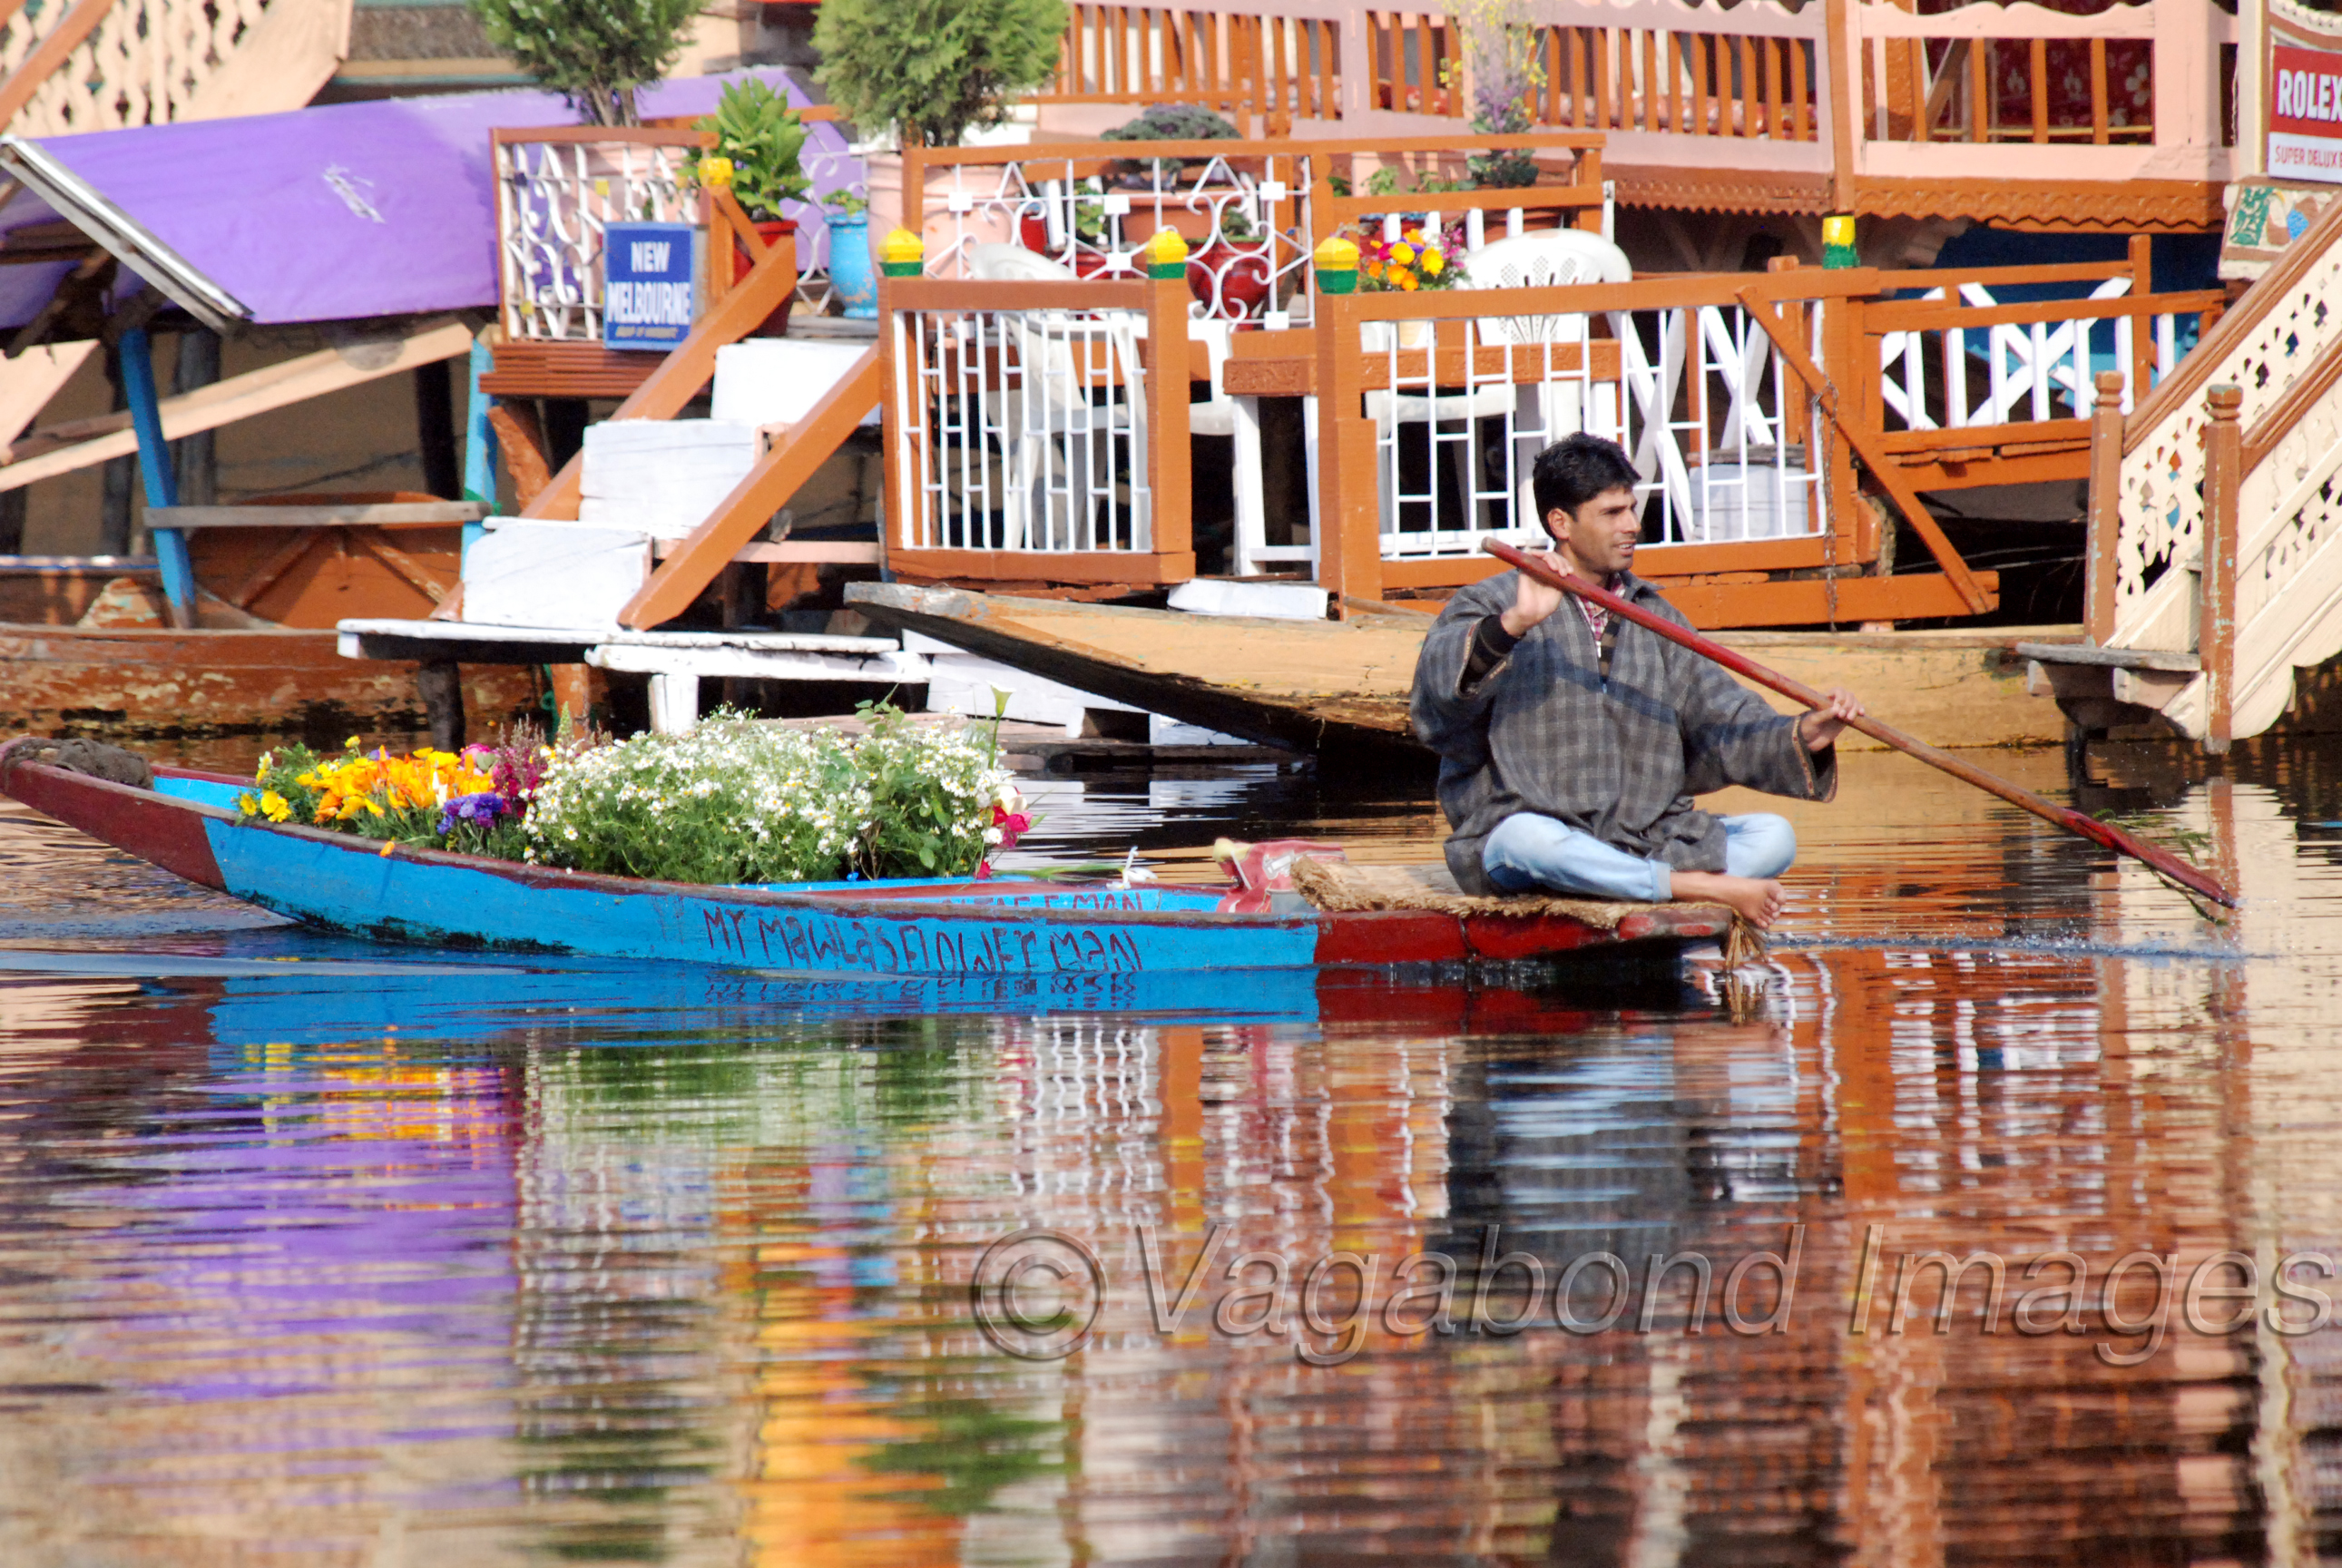 A shikara loaded with beautifully arranged flowers is one of the mostly anticipated sights in a Dal morning